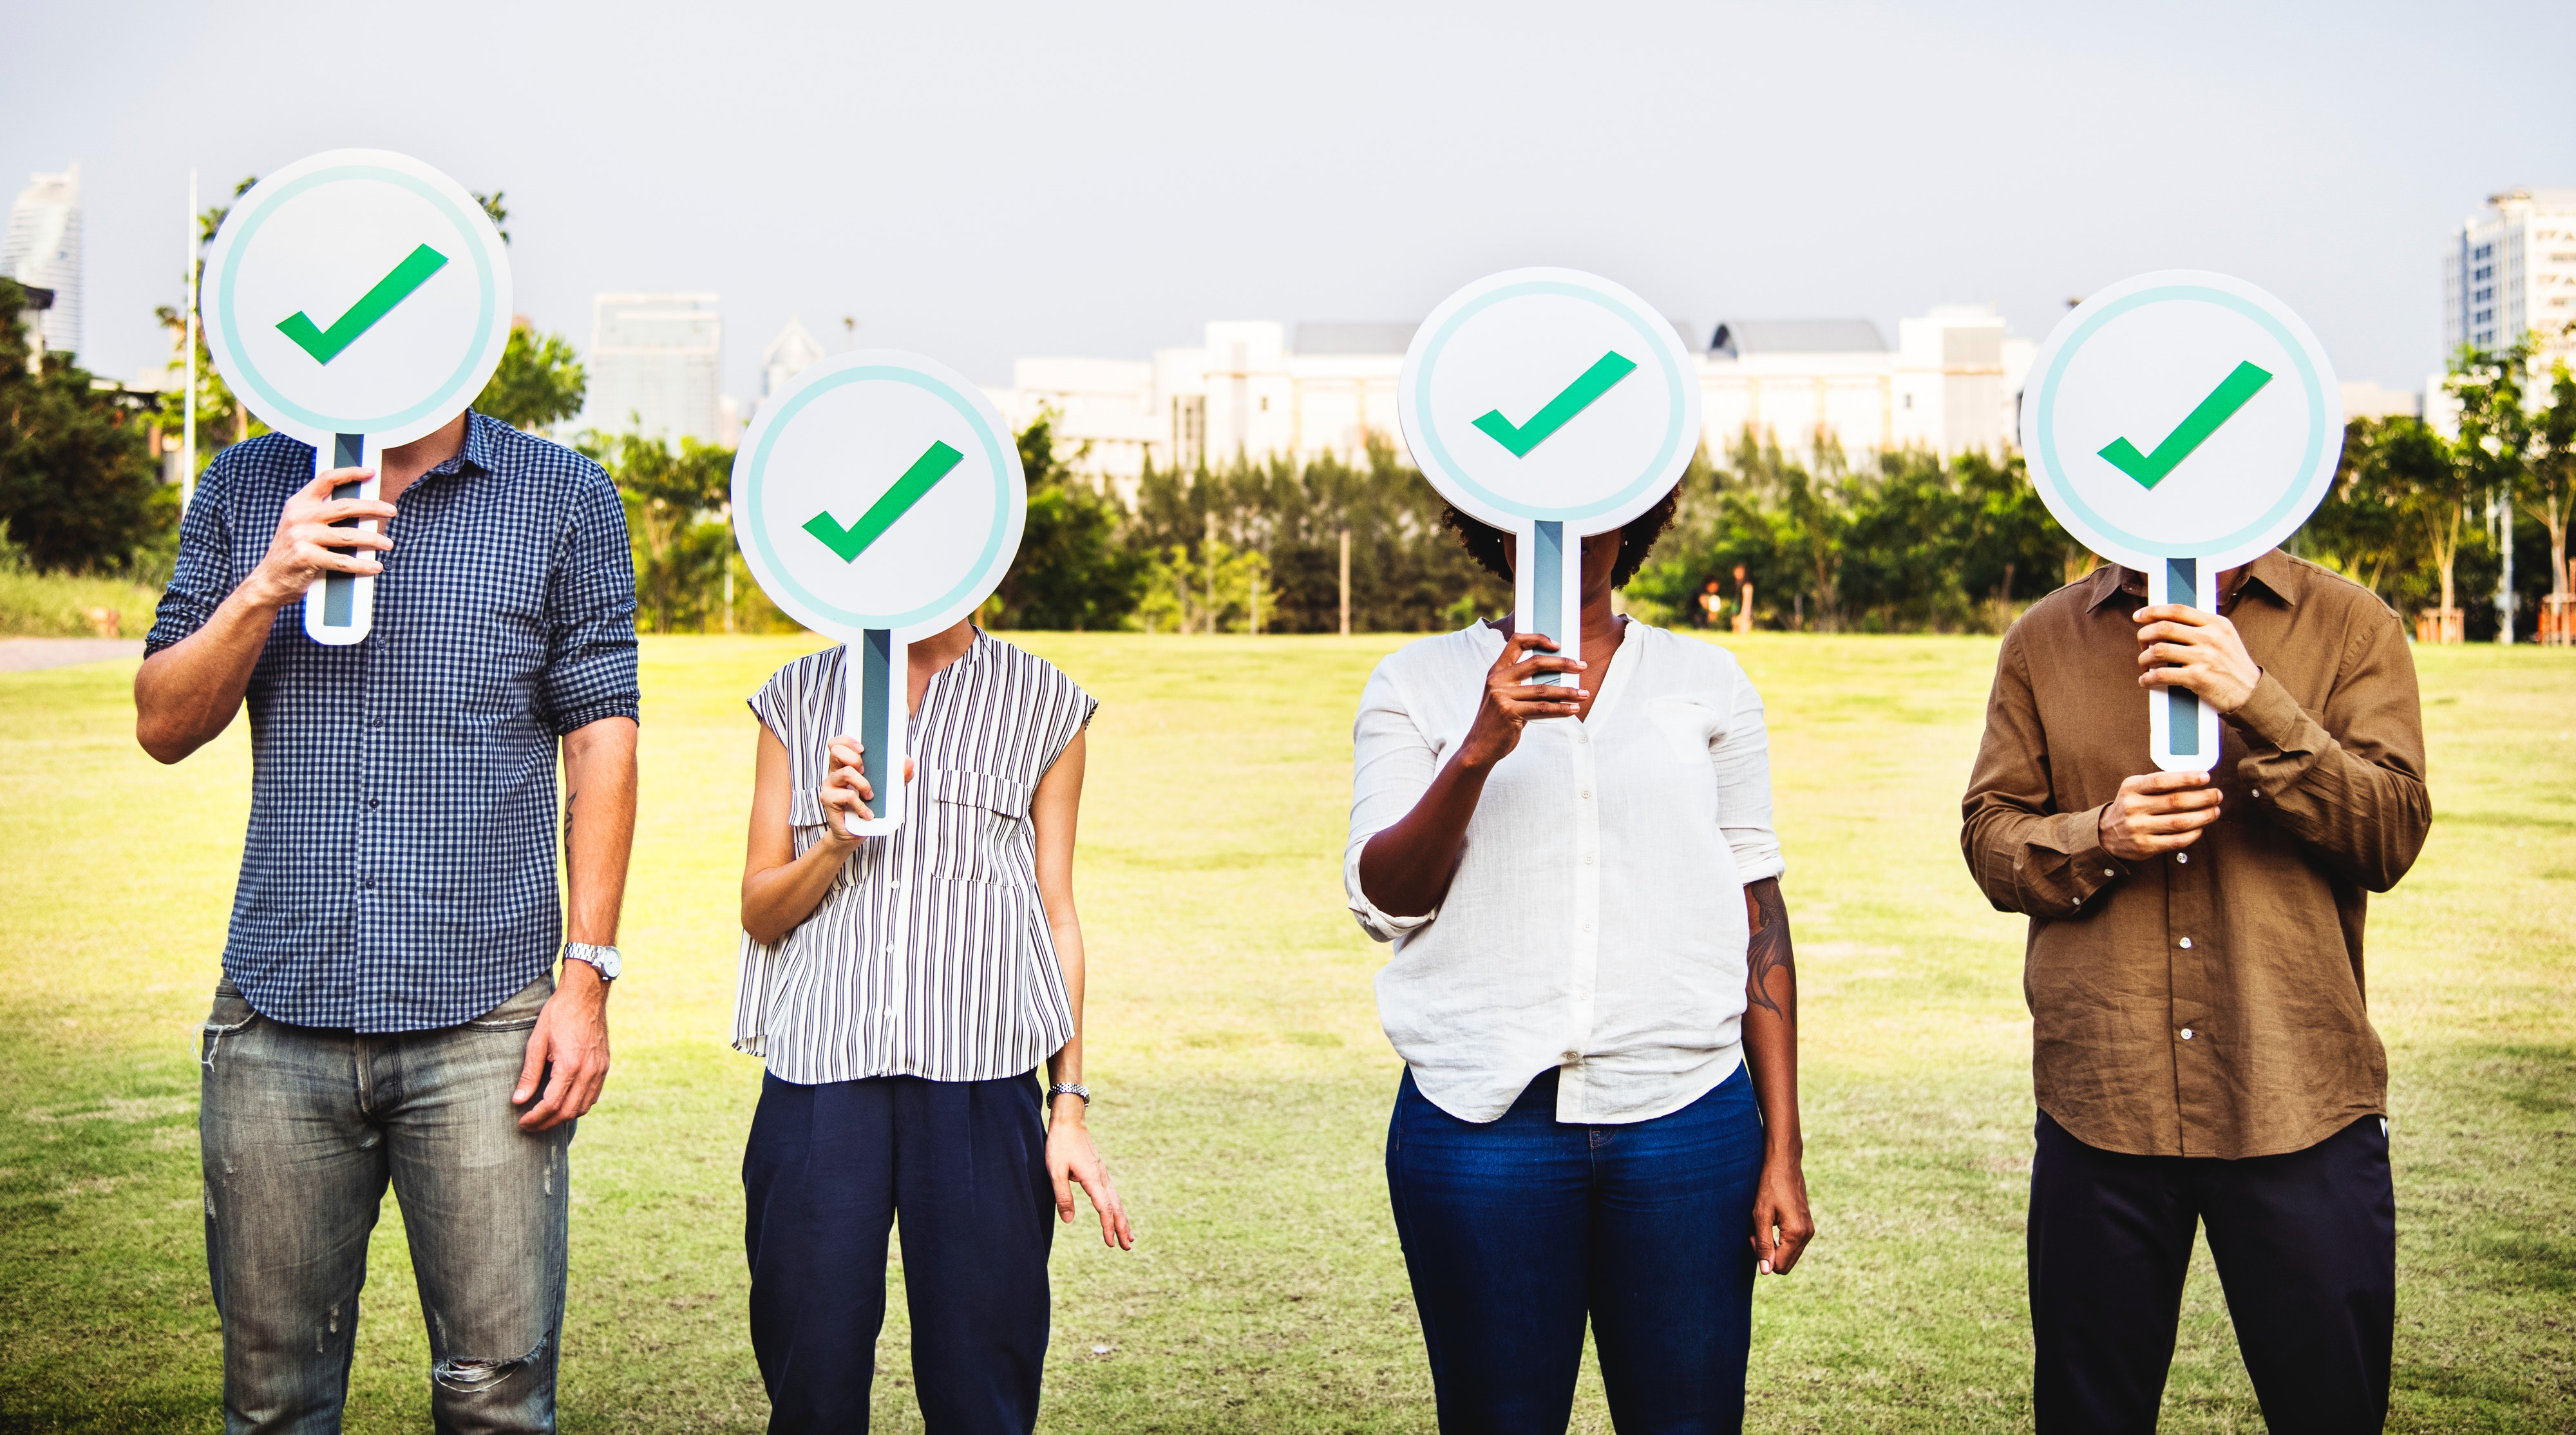 How to Get Verified on Twitter in 2019